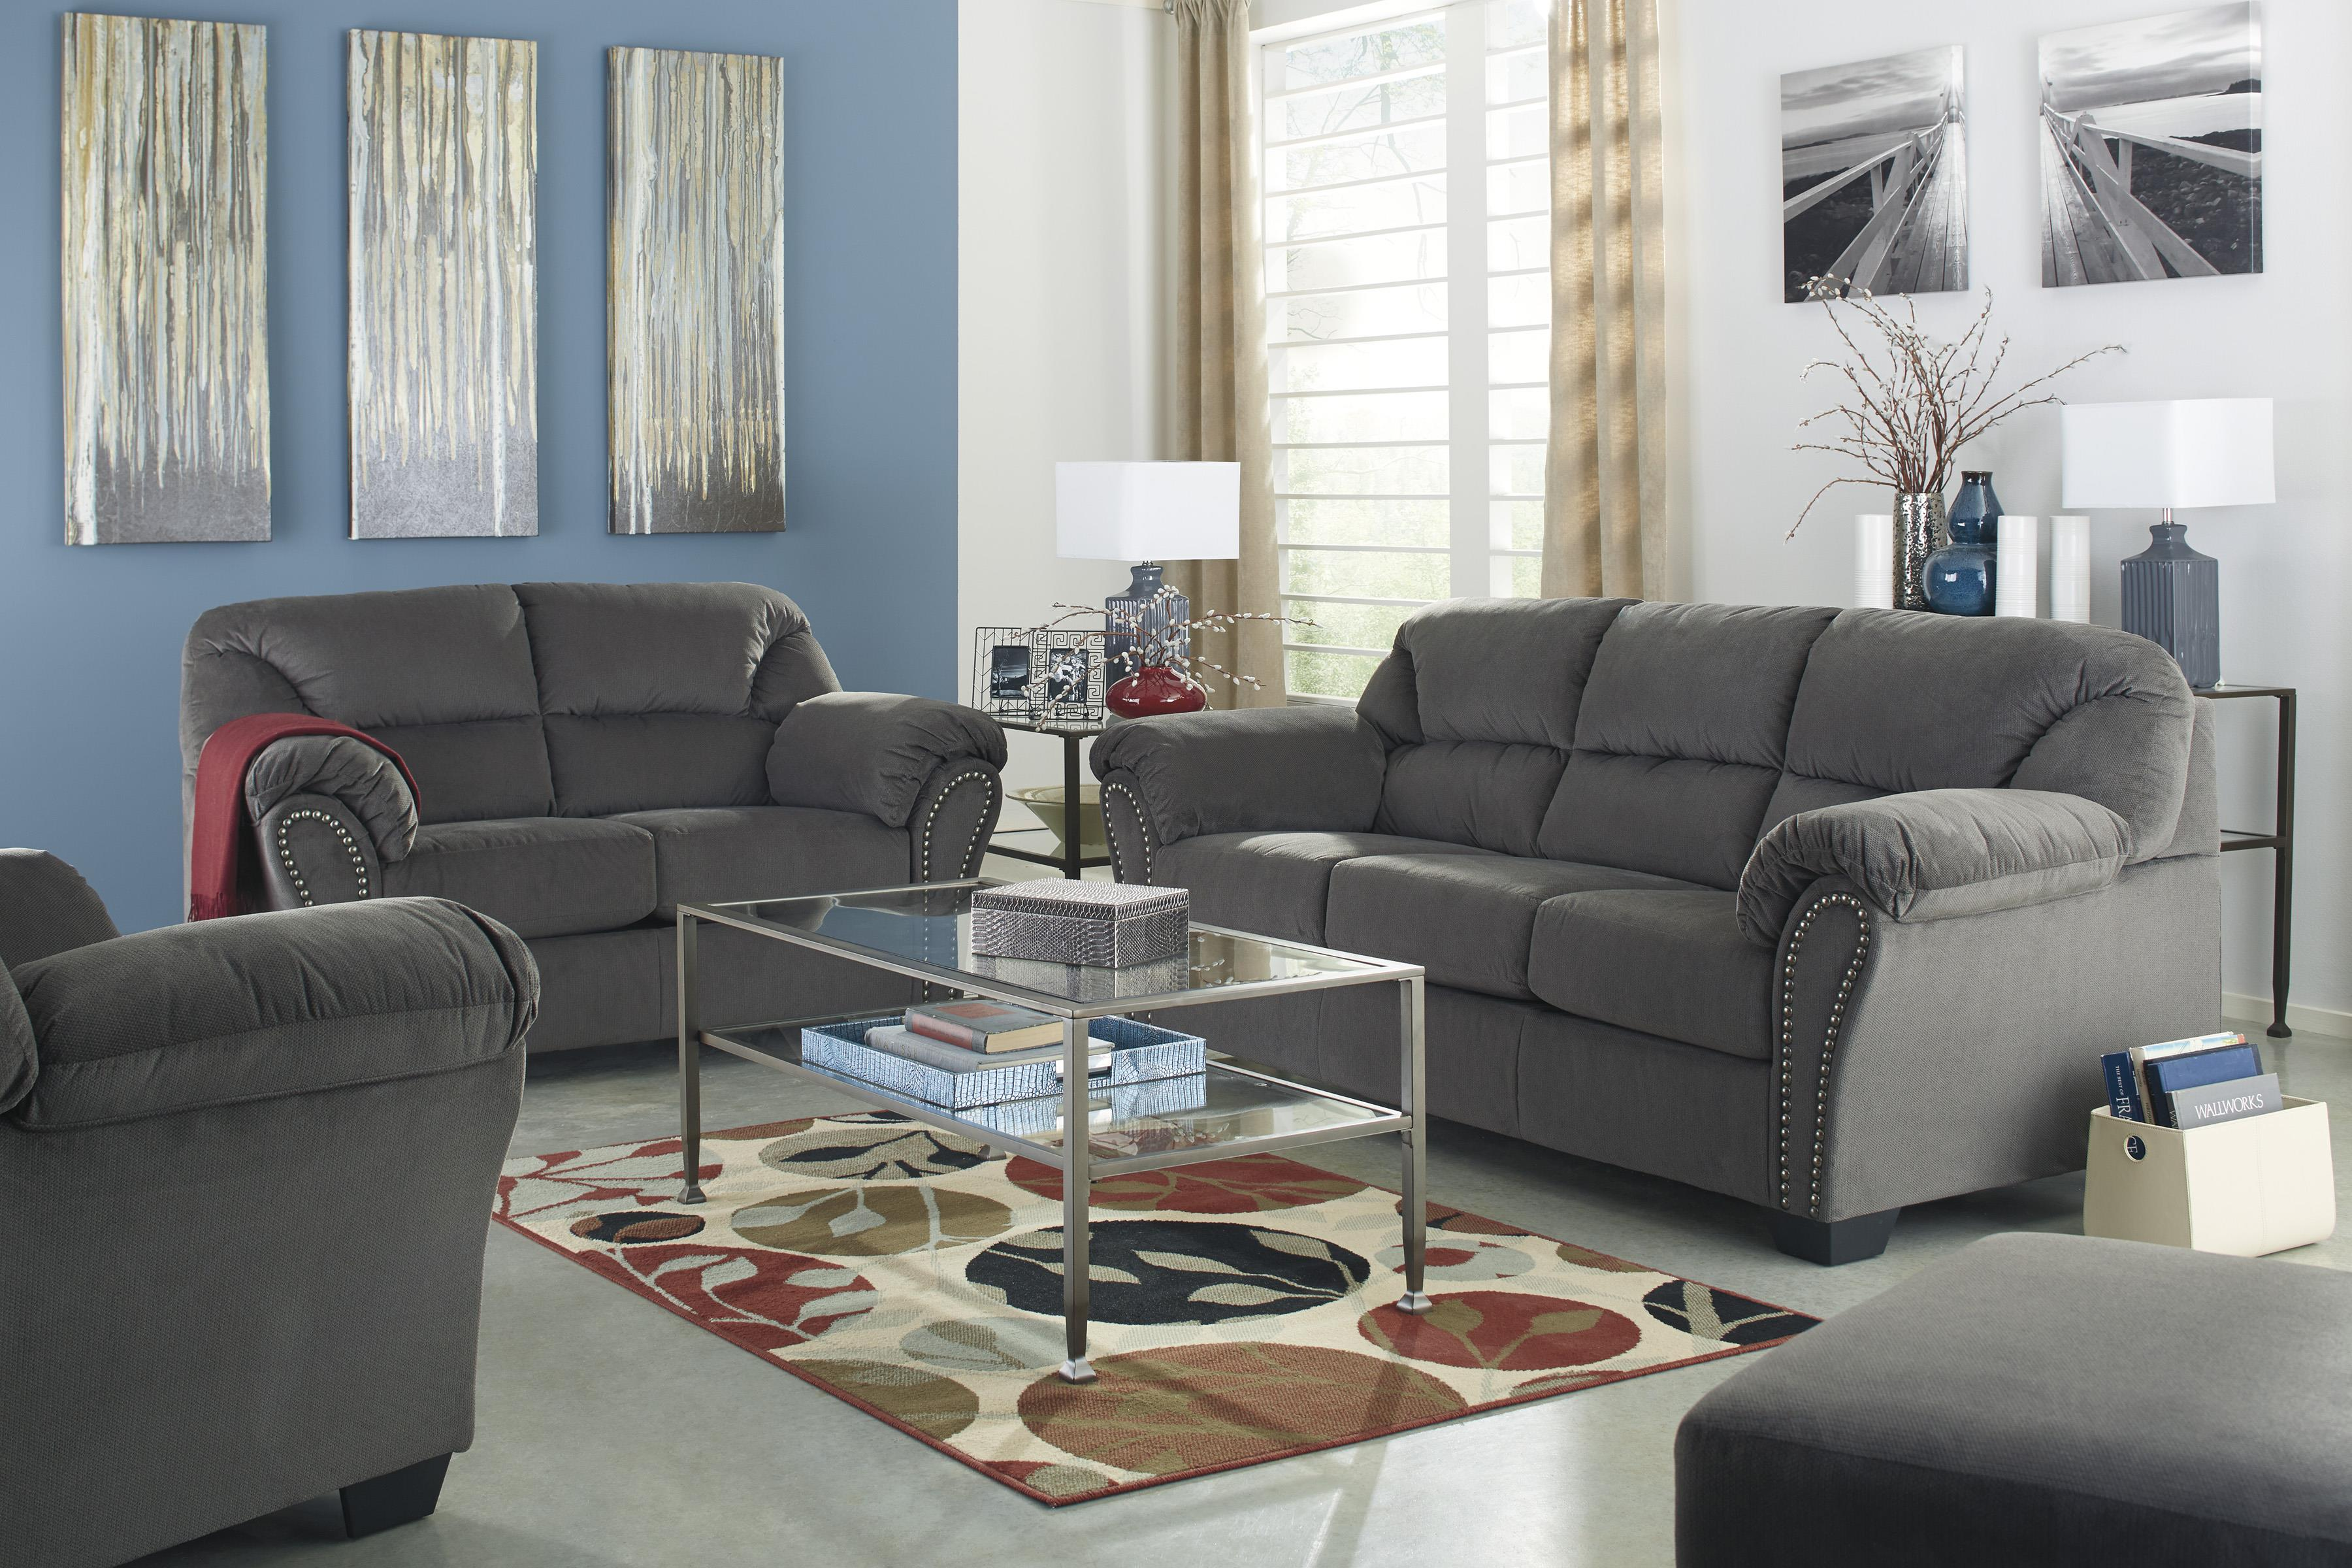 Signature Design By Ashley Kinlock 3340036 Full Sofa Sleeper | Northeast  Factory Direct | Sleeper Sofas Cleveland, Eastlake, Westlake, Mentor,  Medina, Ohio